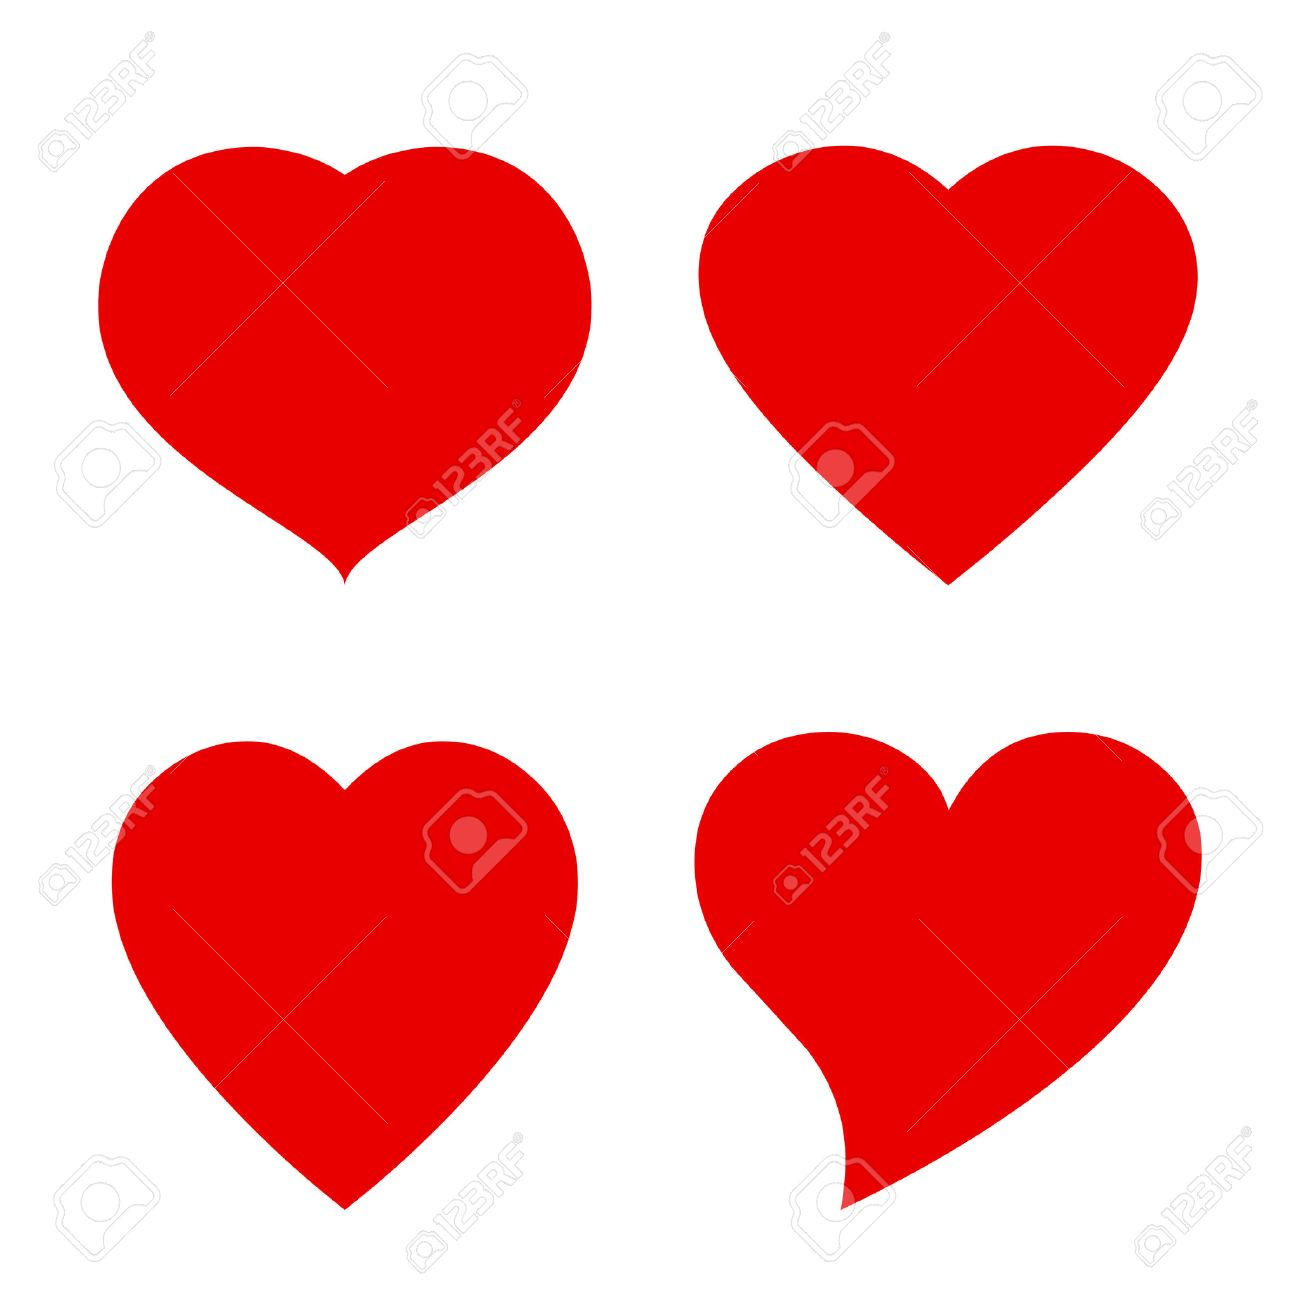 366 451 heart shape cliparts stock vector and royalty free heart rh 123rf com heart shape clip art black and white heart shape clipart